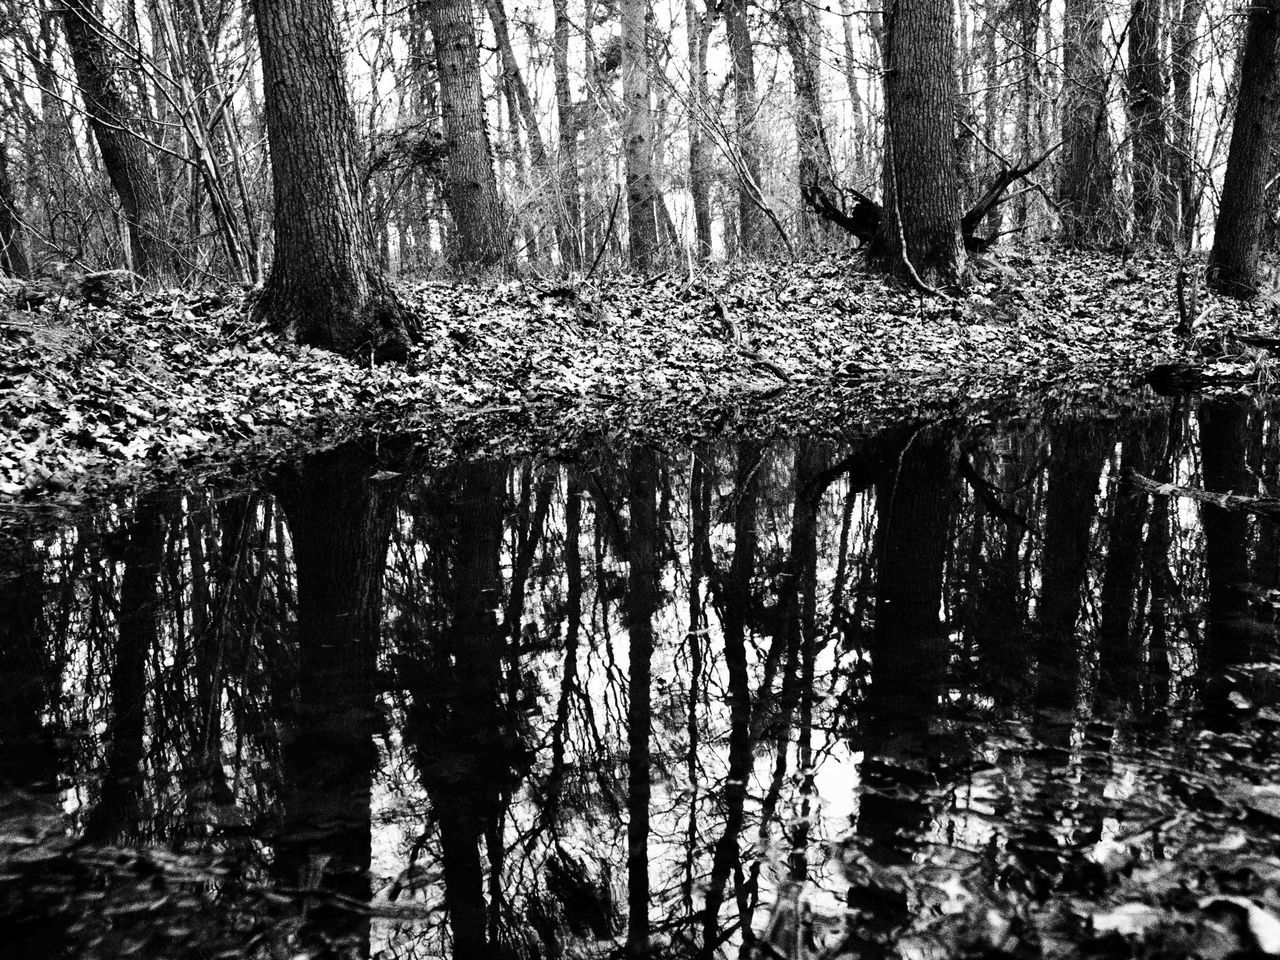 tree, tree trunk, forest, reflection, nature, water, tranquility, day, outdoors, woodland, no people, beauty in nature, lake, scenics